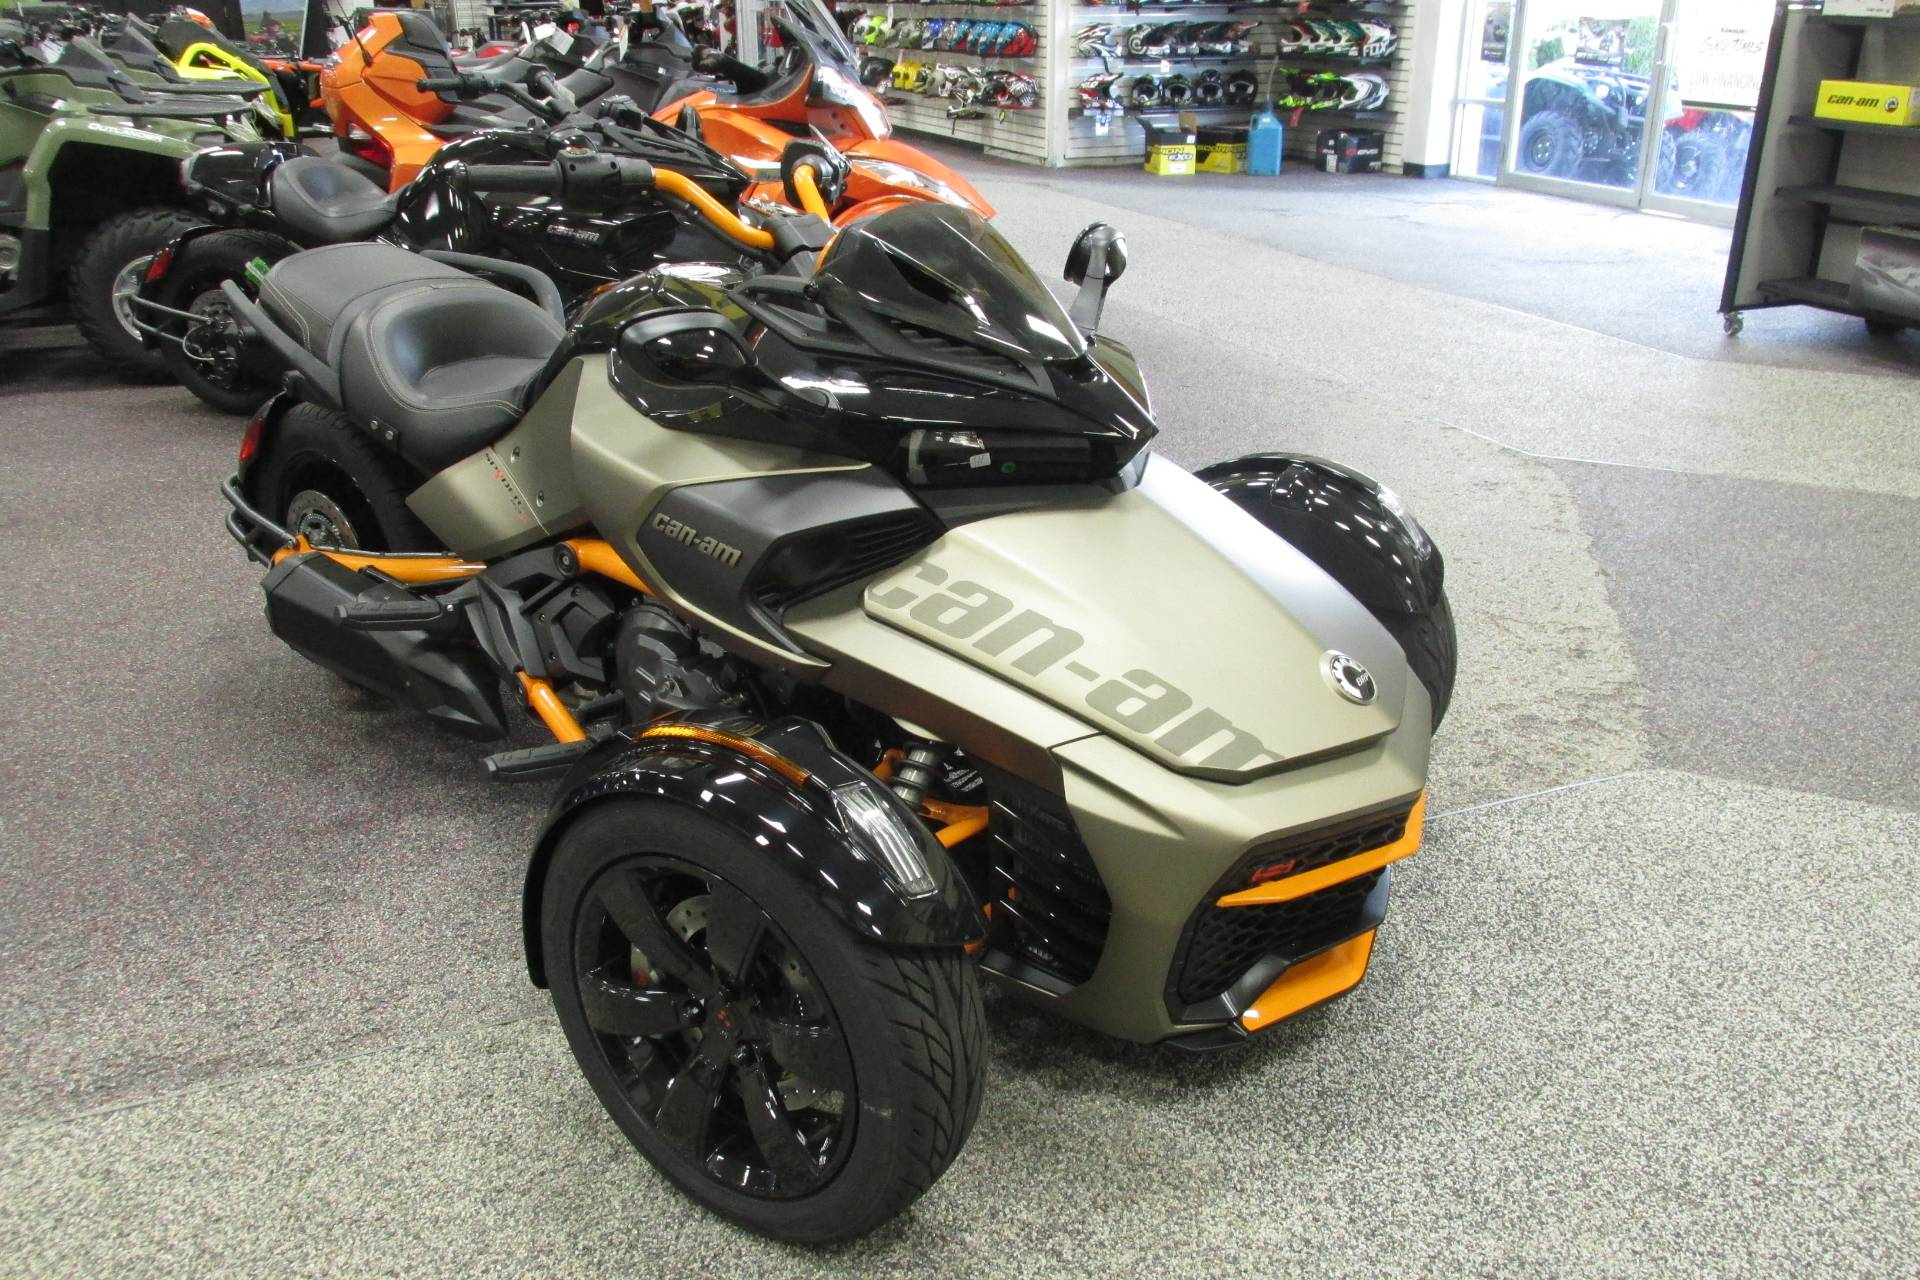 2019 Can-Am SPYDER F3-S SE6 in Springfield, Ohio - Photo 4